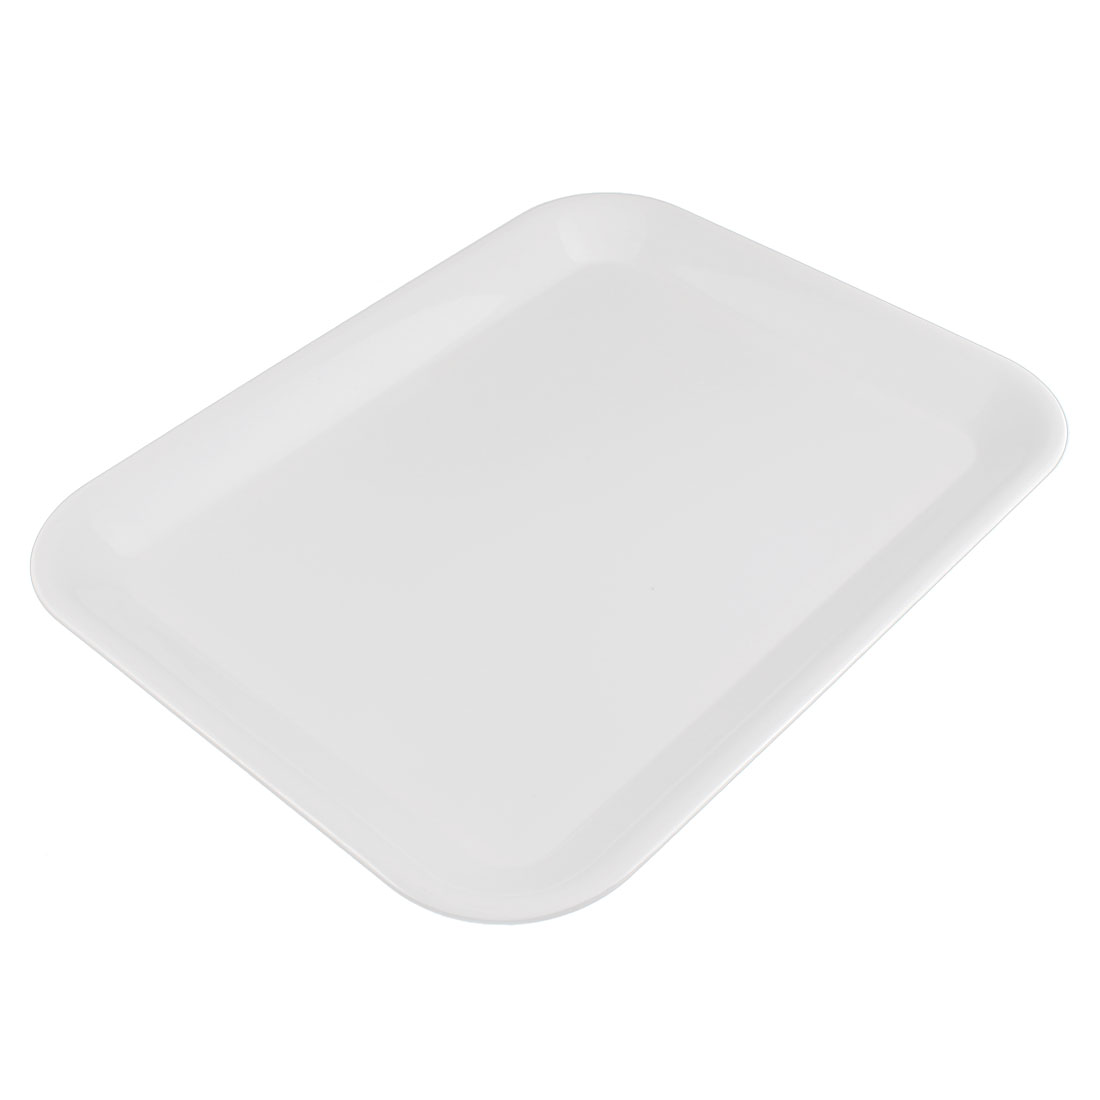 Hotel Restaurant Rectangle Shaped Food Cake Serving Tray White